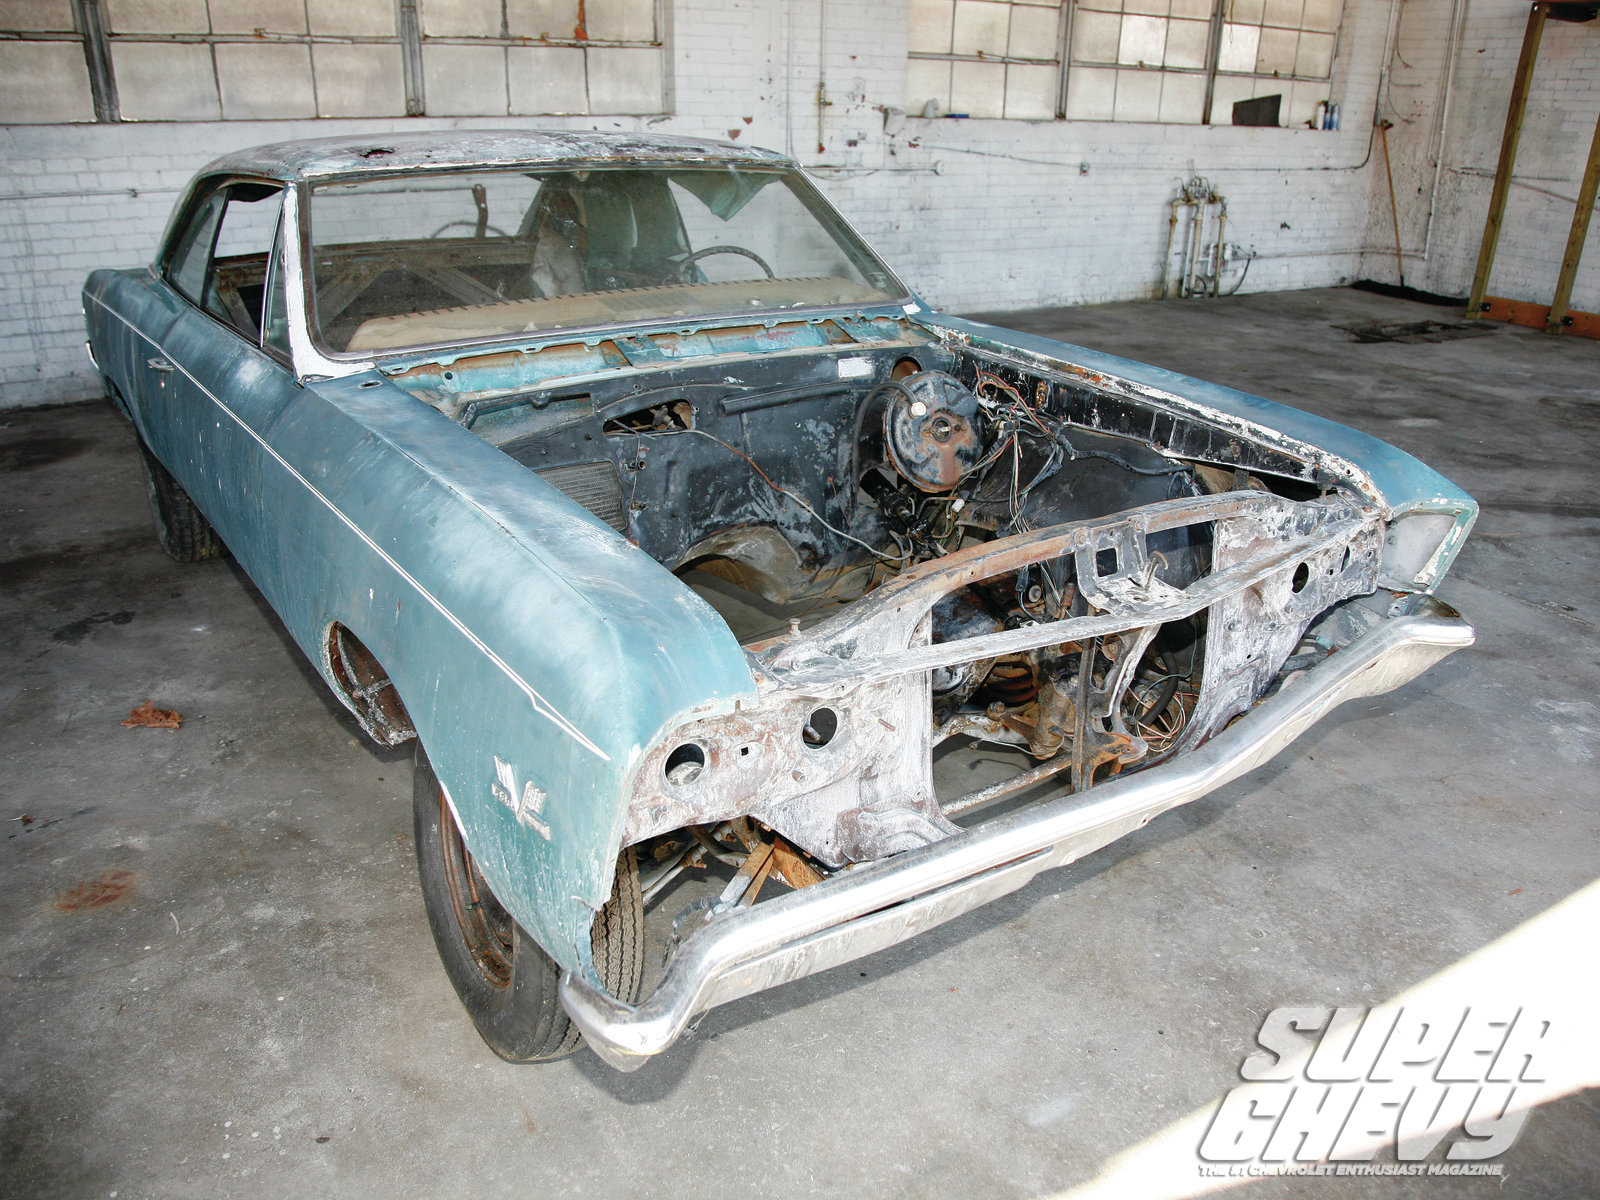 1967 Chevrolet Chevelle AMD Project - How Much Project Can You Handle?